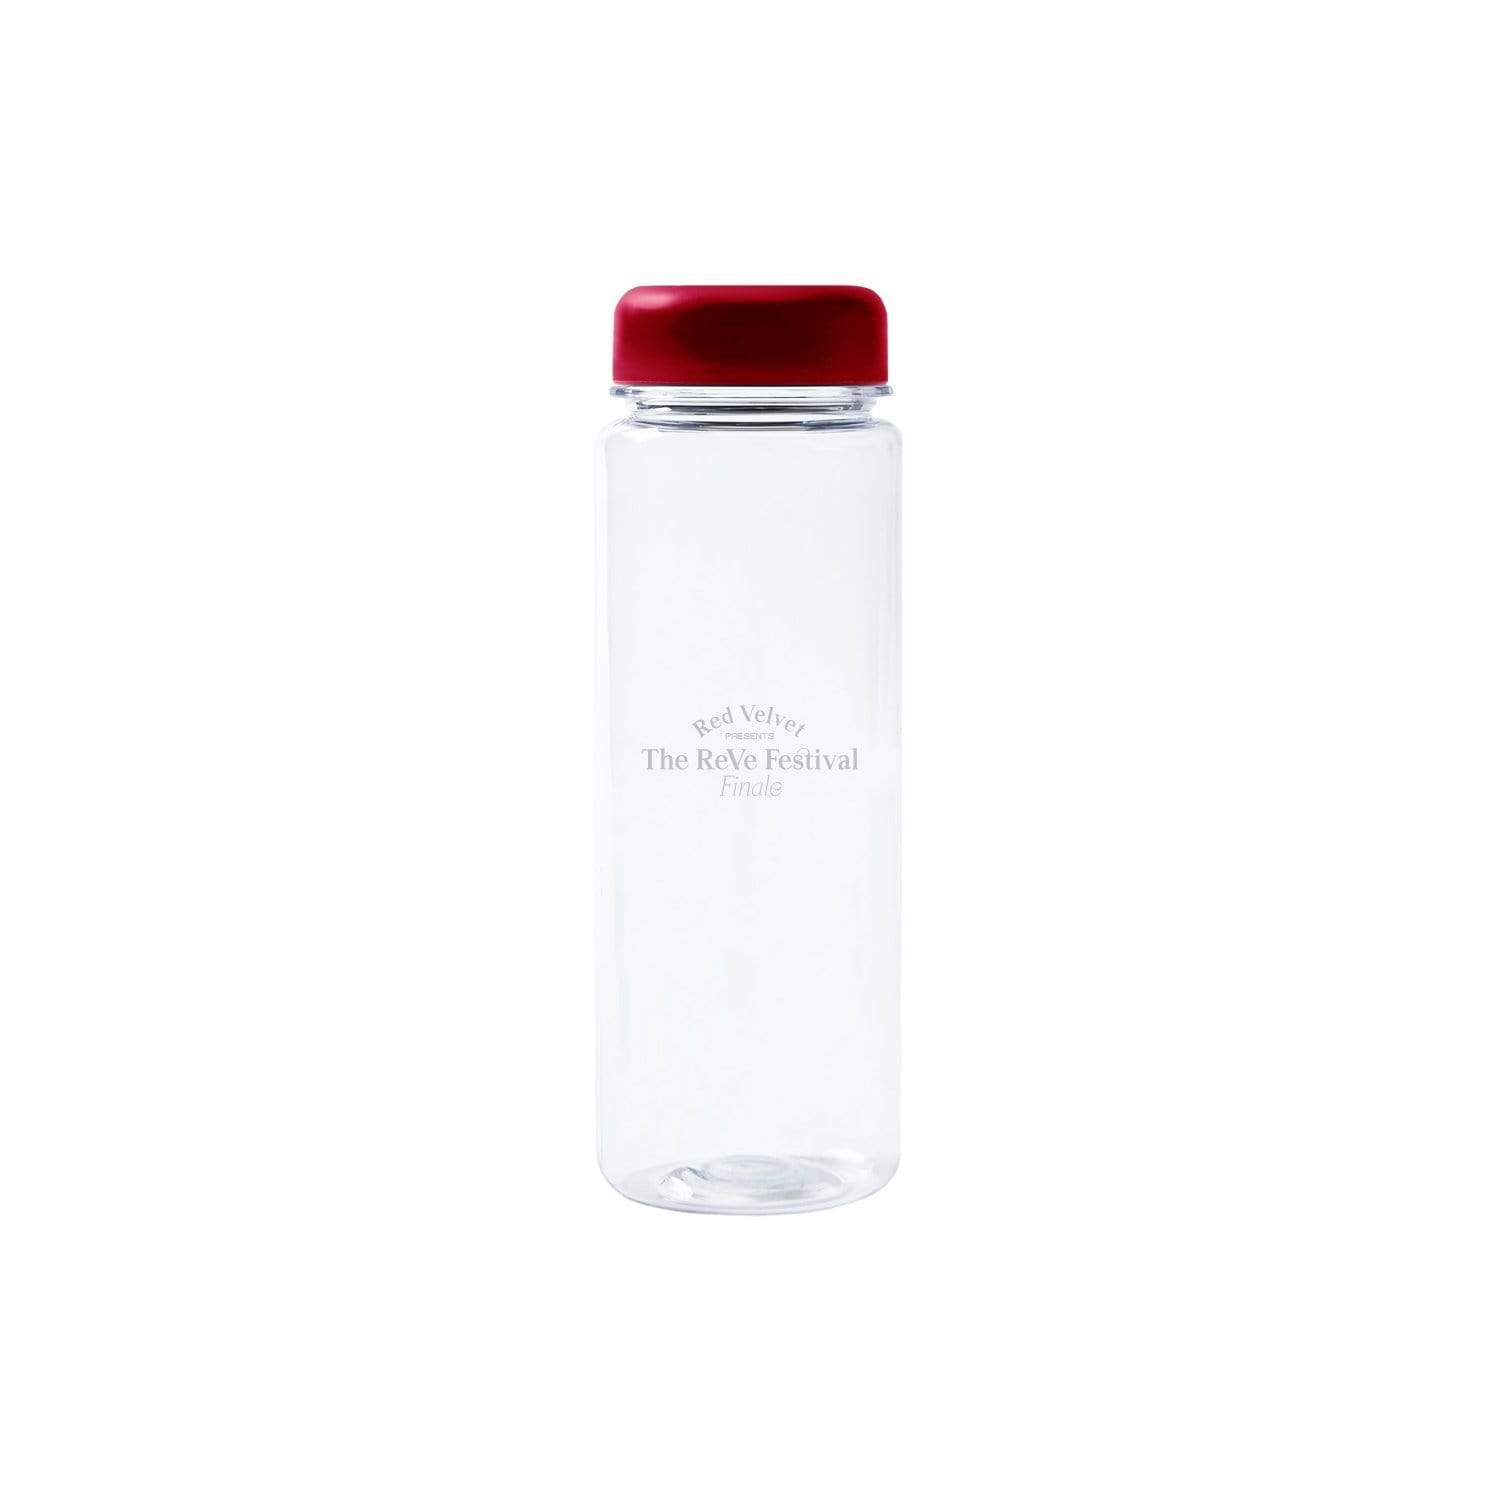 pre-order-red-velvet-clear-water-bottle-and-sticker-set-with-exclusive-photo-tag-accessories-red-velvet-973295_2400x